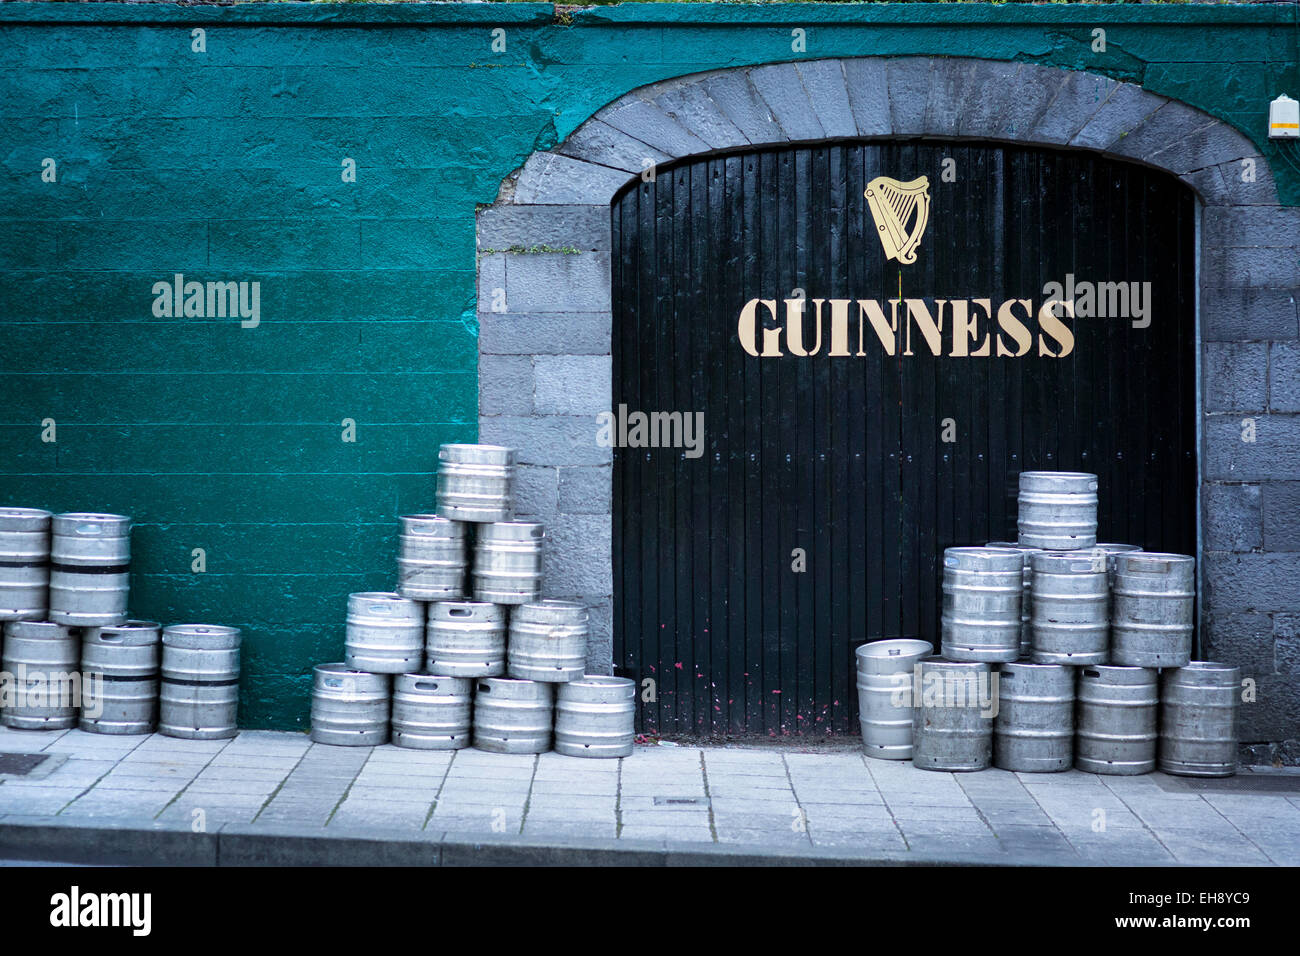 Barrels of Guinness stacked outside an pub in Galway, Ireland - Stock Image